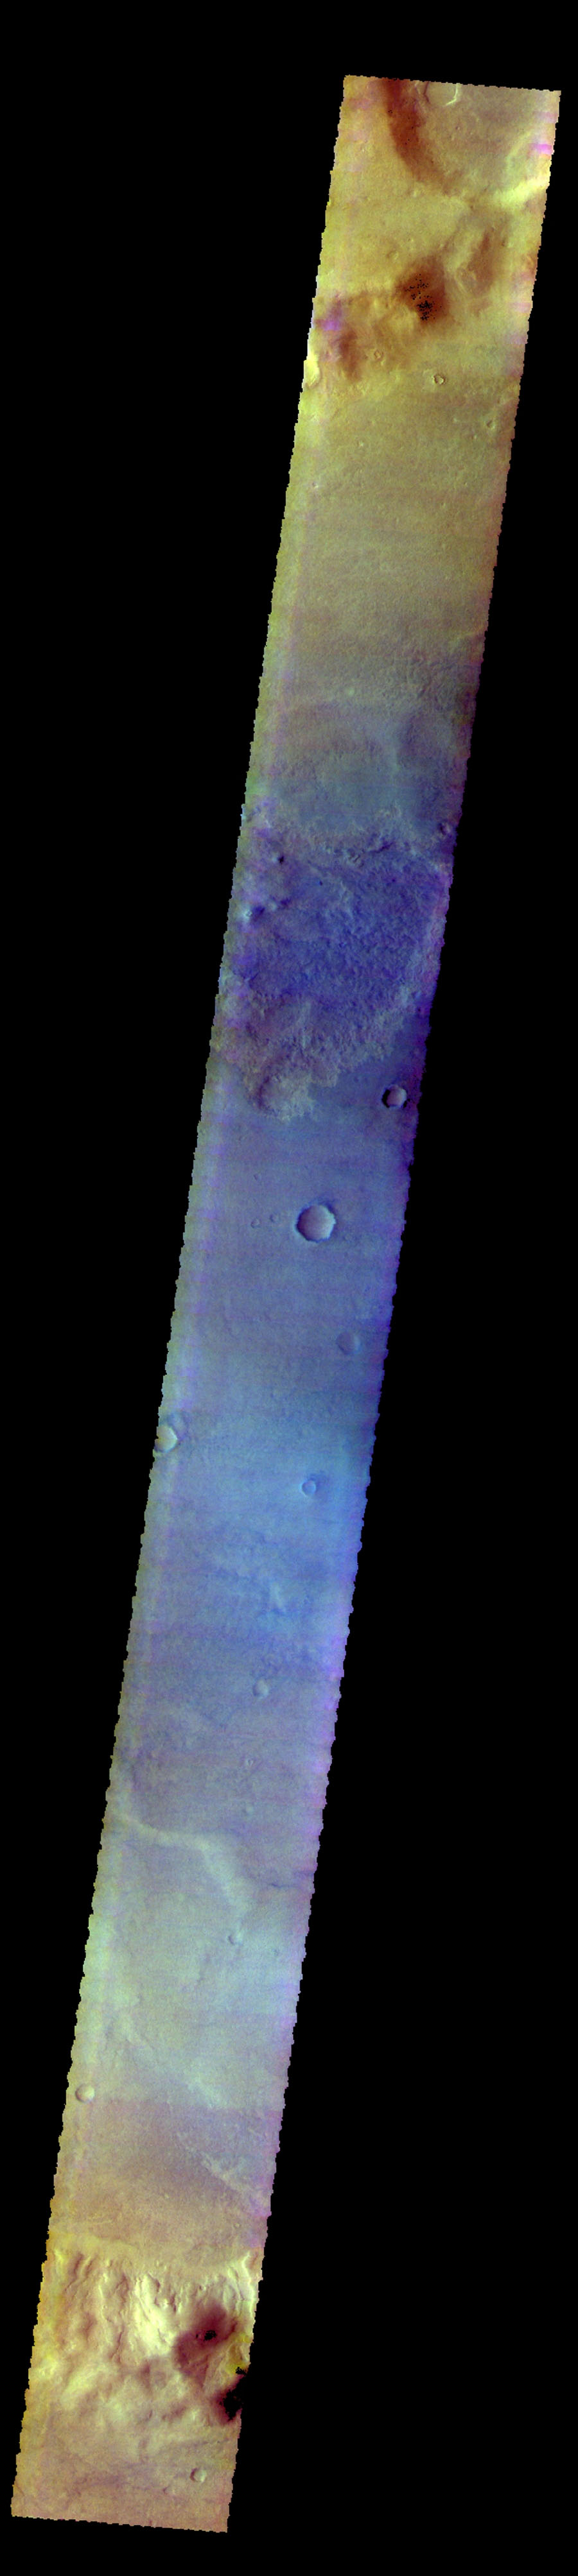 The THEMIS camera contains 5 filters. Data from different filters can be combined in many ways to create a false color image. This image from NASA's 2001 Mars Odyssey spacecraft shows part of Proctor Crater in Noachis Terra.